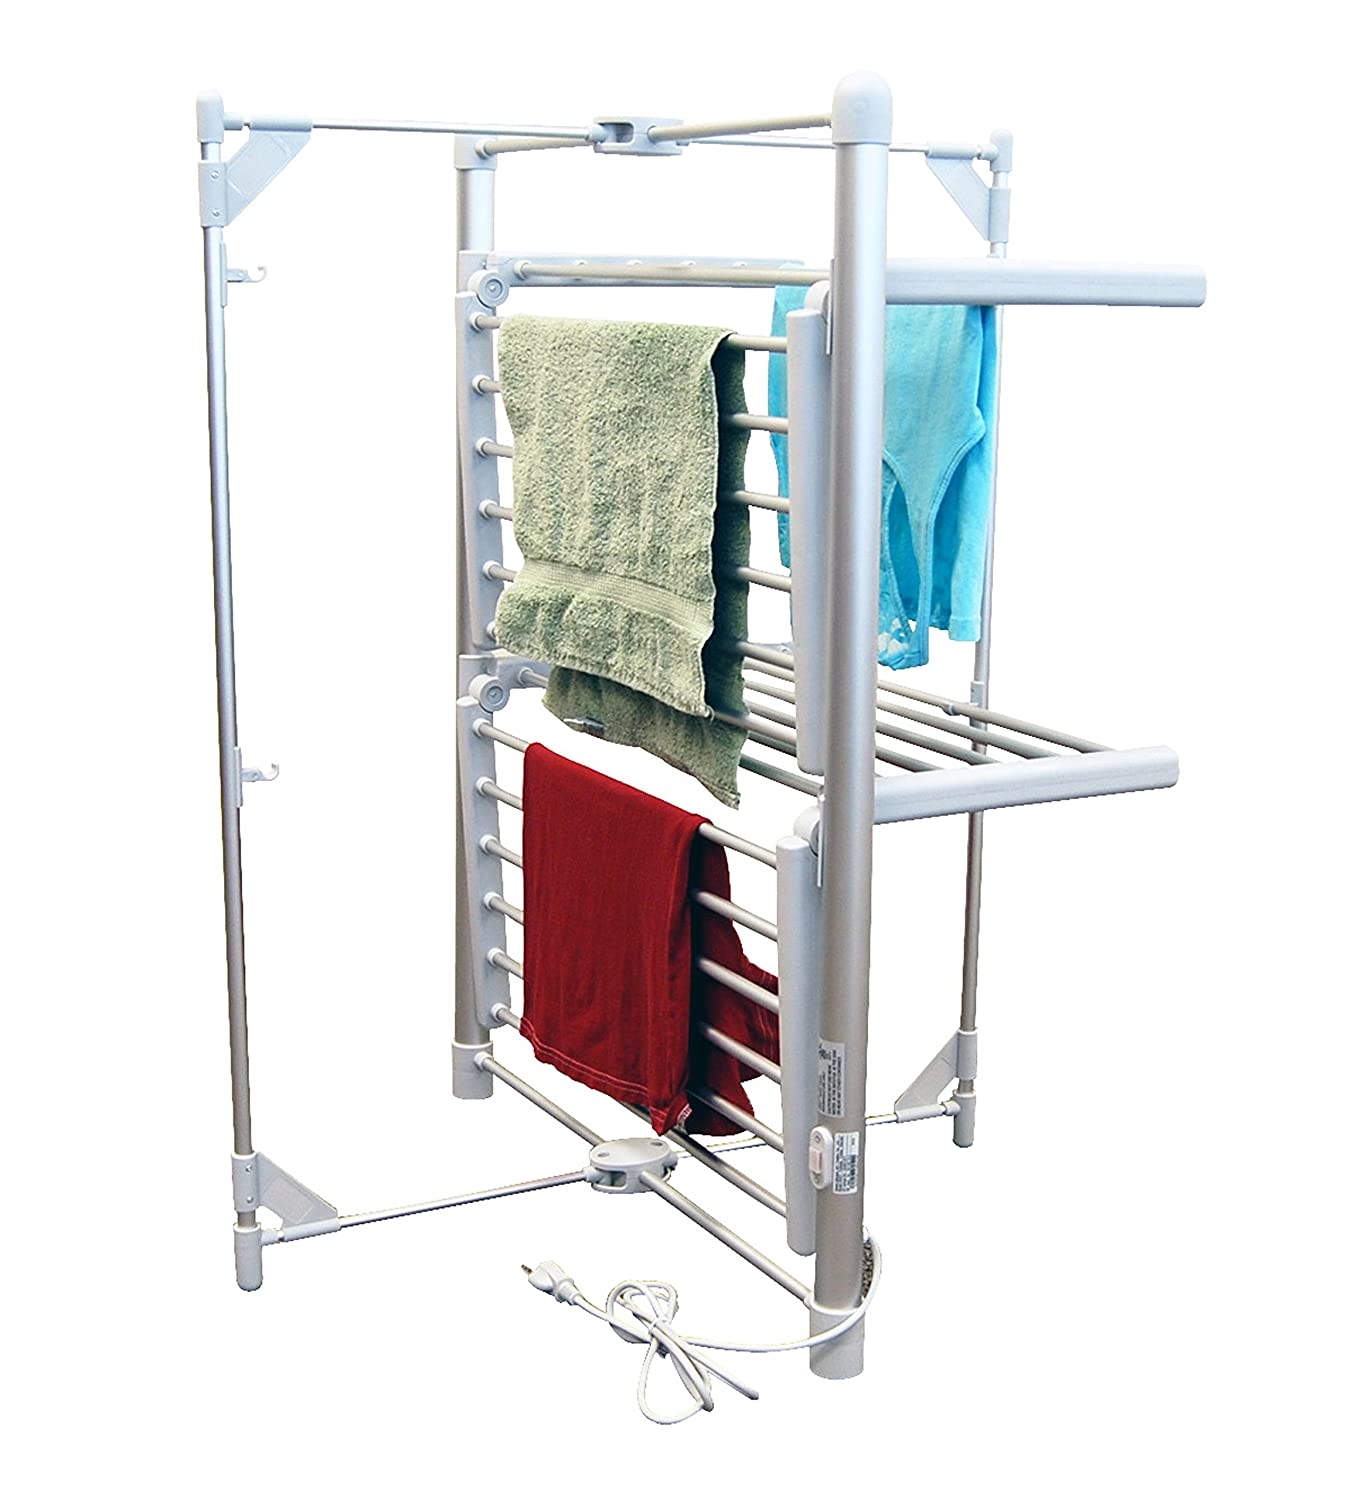 LCM Home Fashions 2-Tier Heated Drying Rack Tower Warmer Inc. PA005